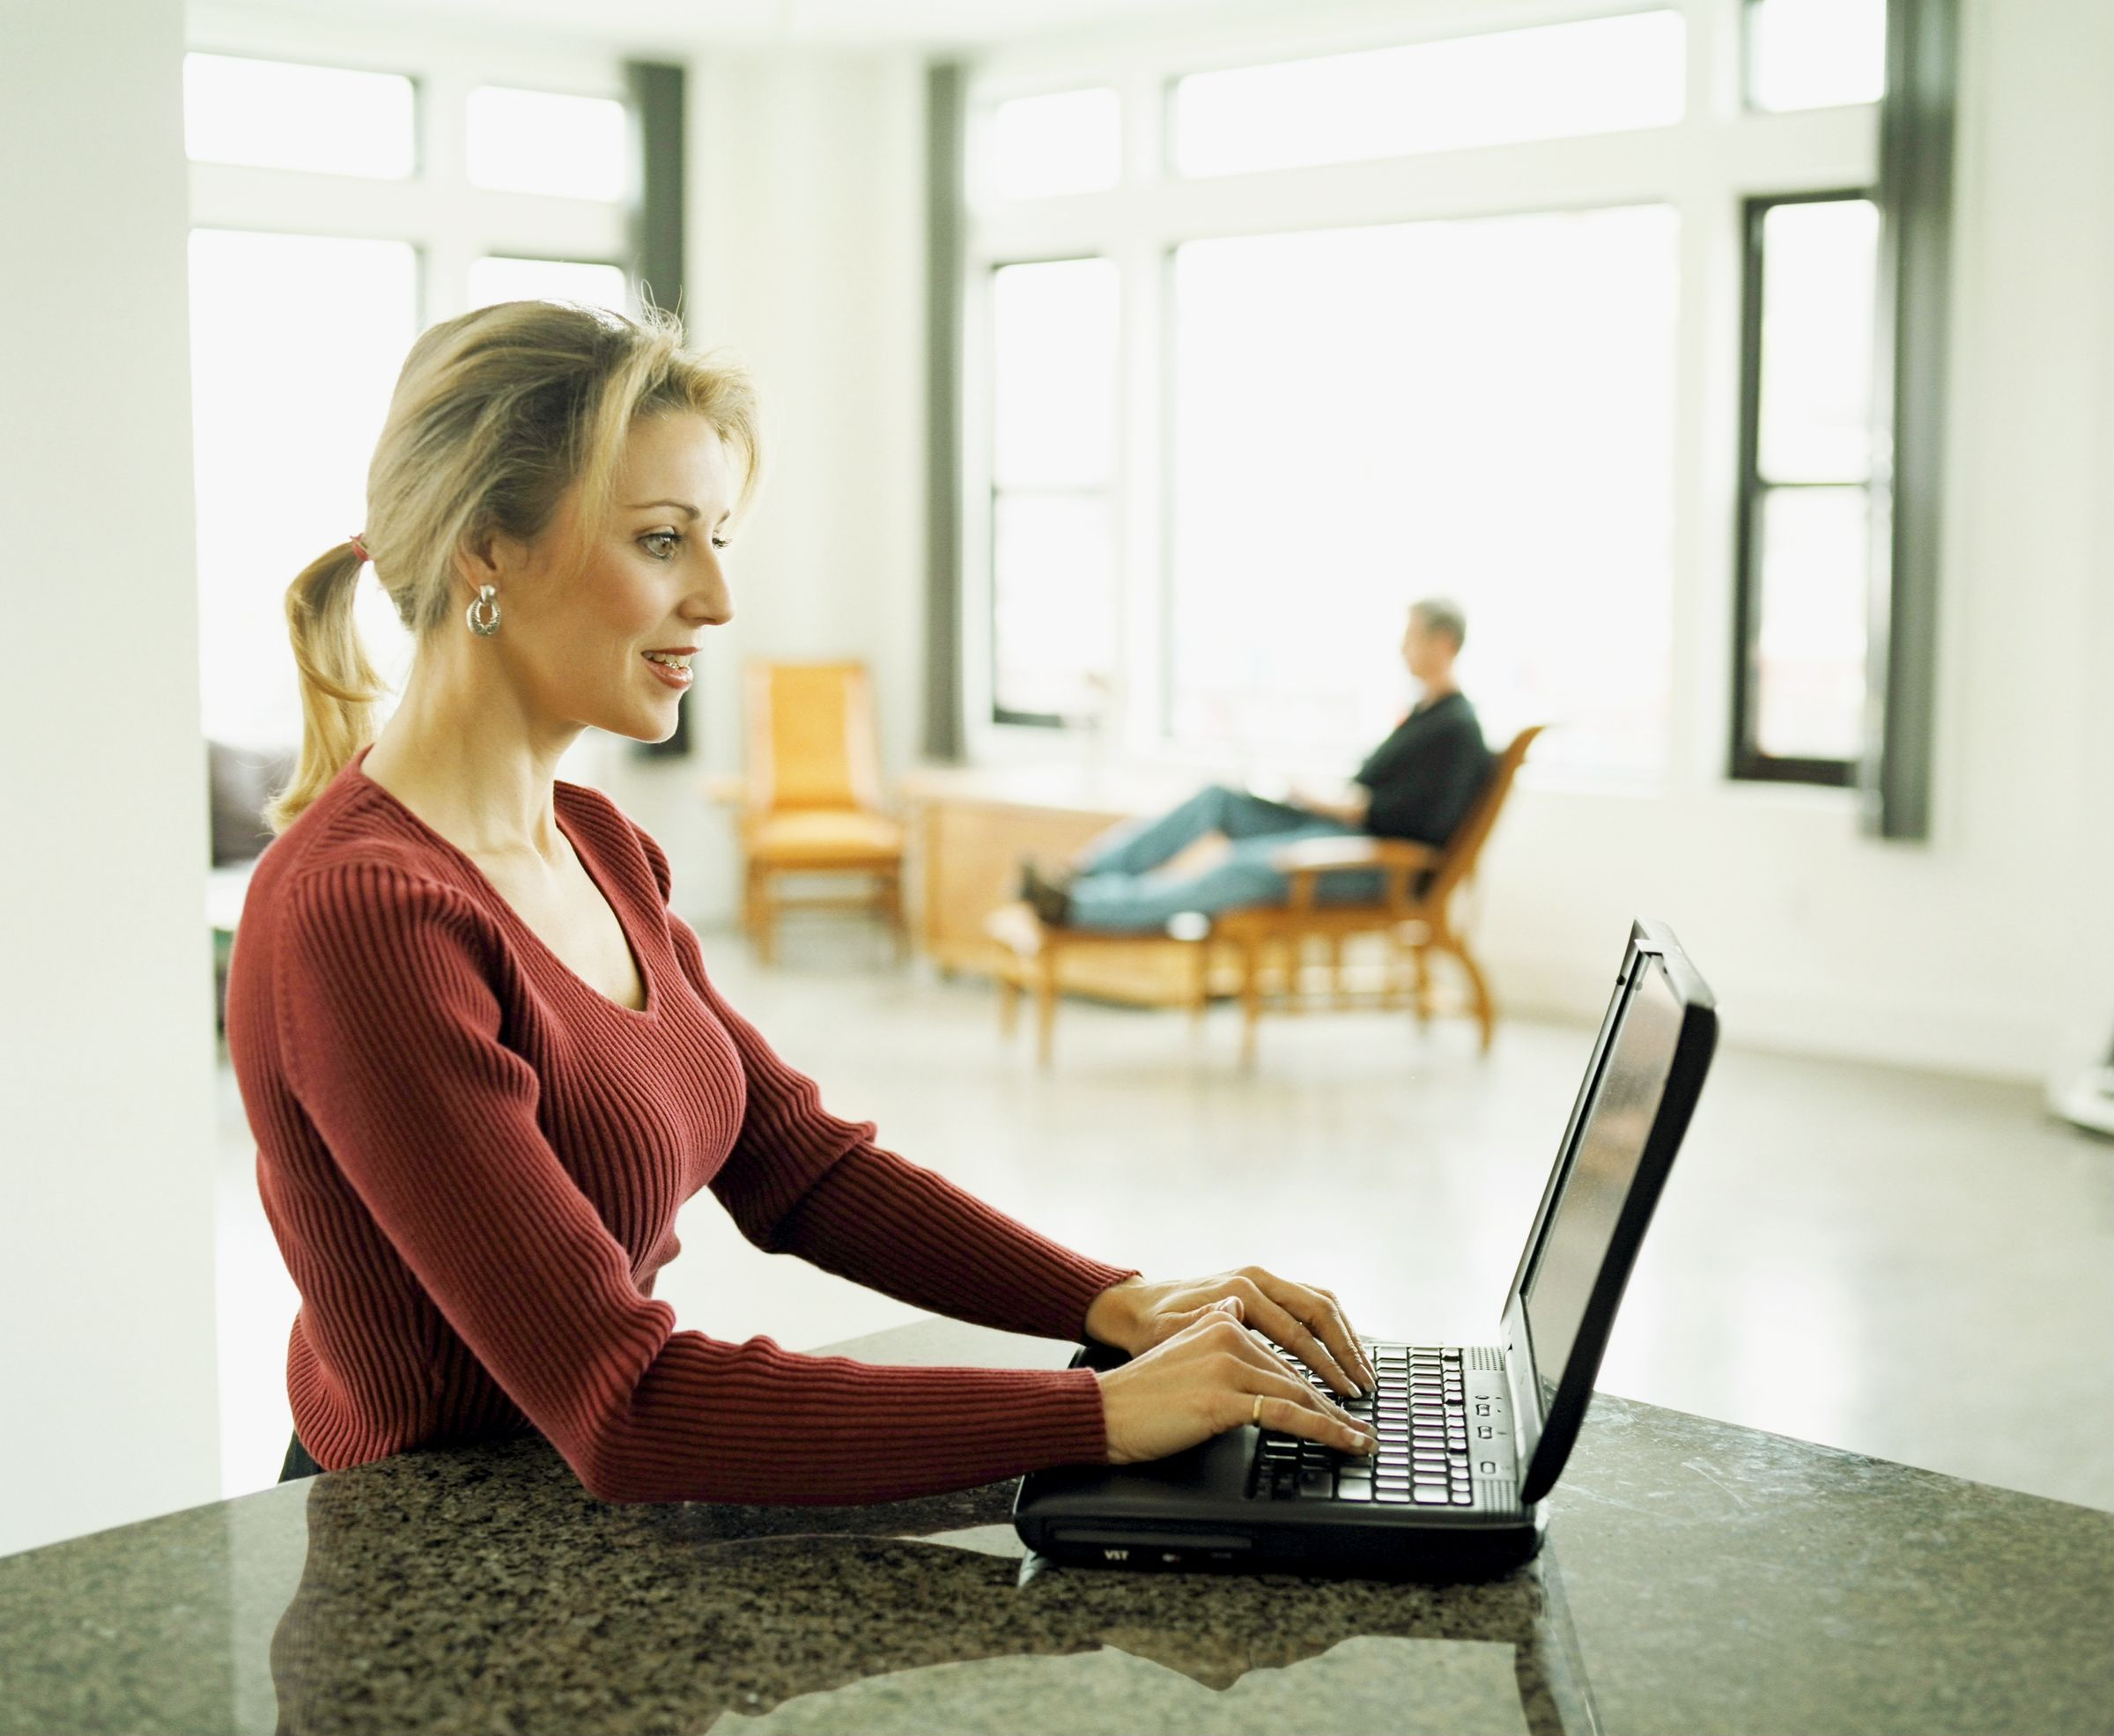 Best Payday Loans For Bad Credit Don T Worry If You Want To Personal Loans And No Credit Or Bad To Personal Loans Loans For Bad Credit Bad Credit Payday Loans